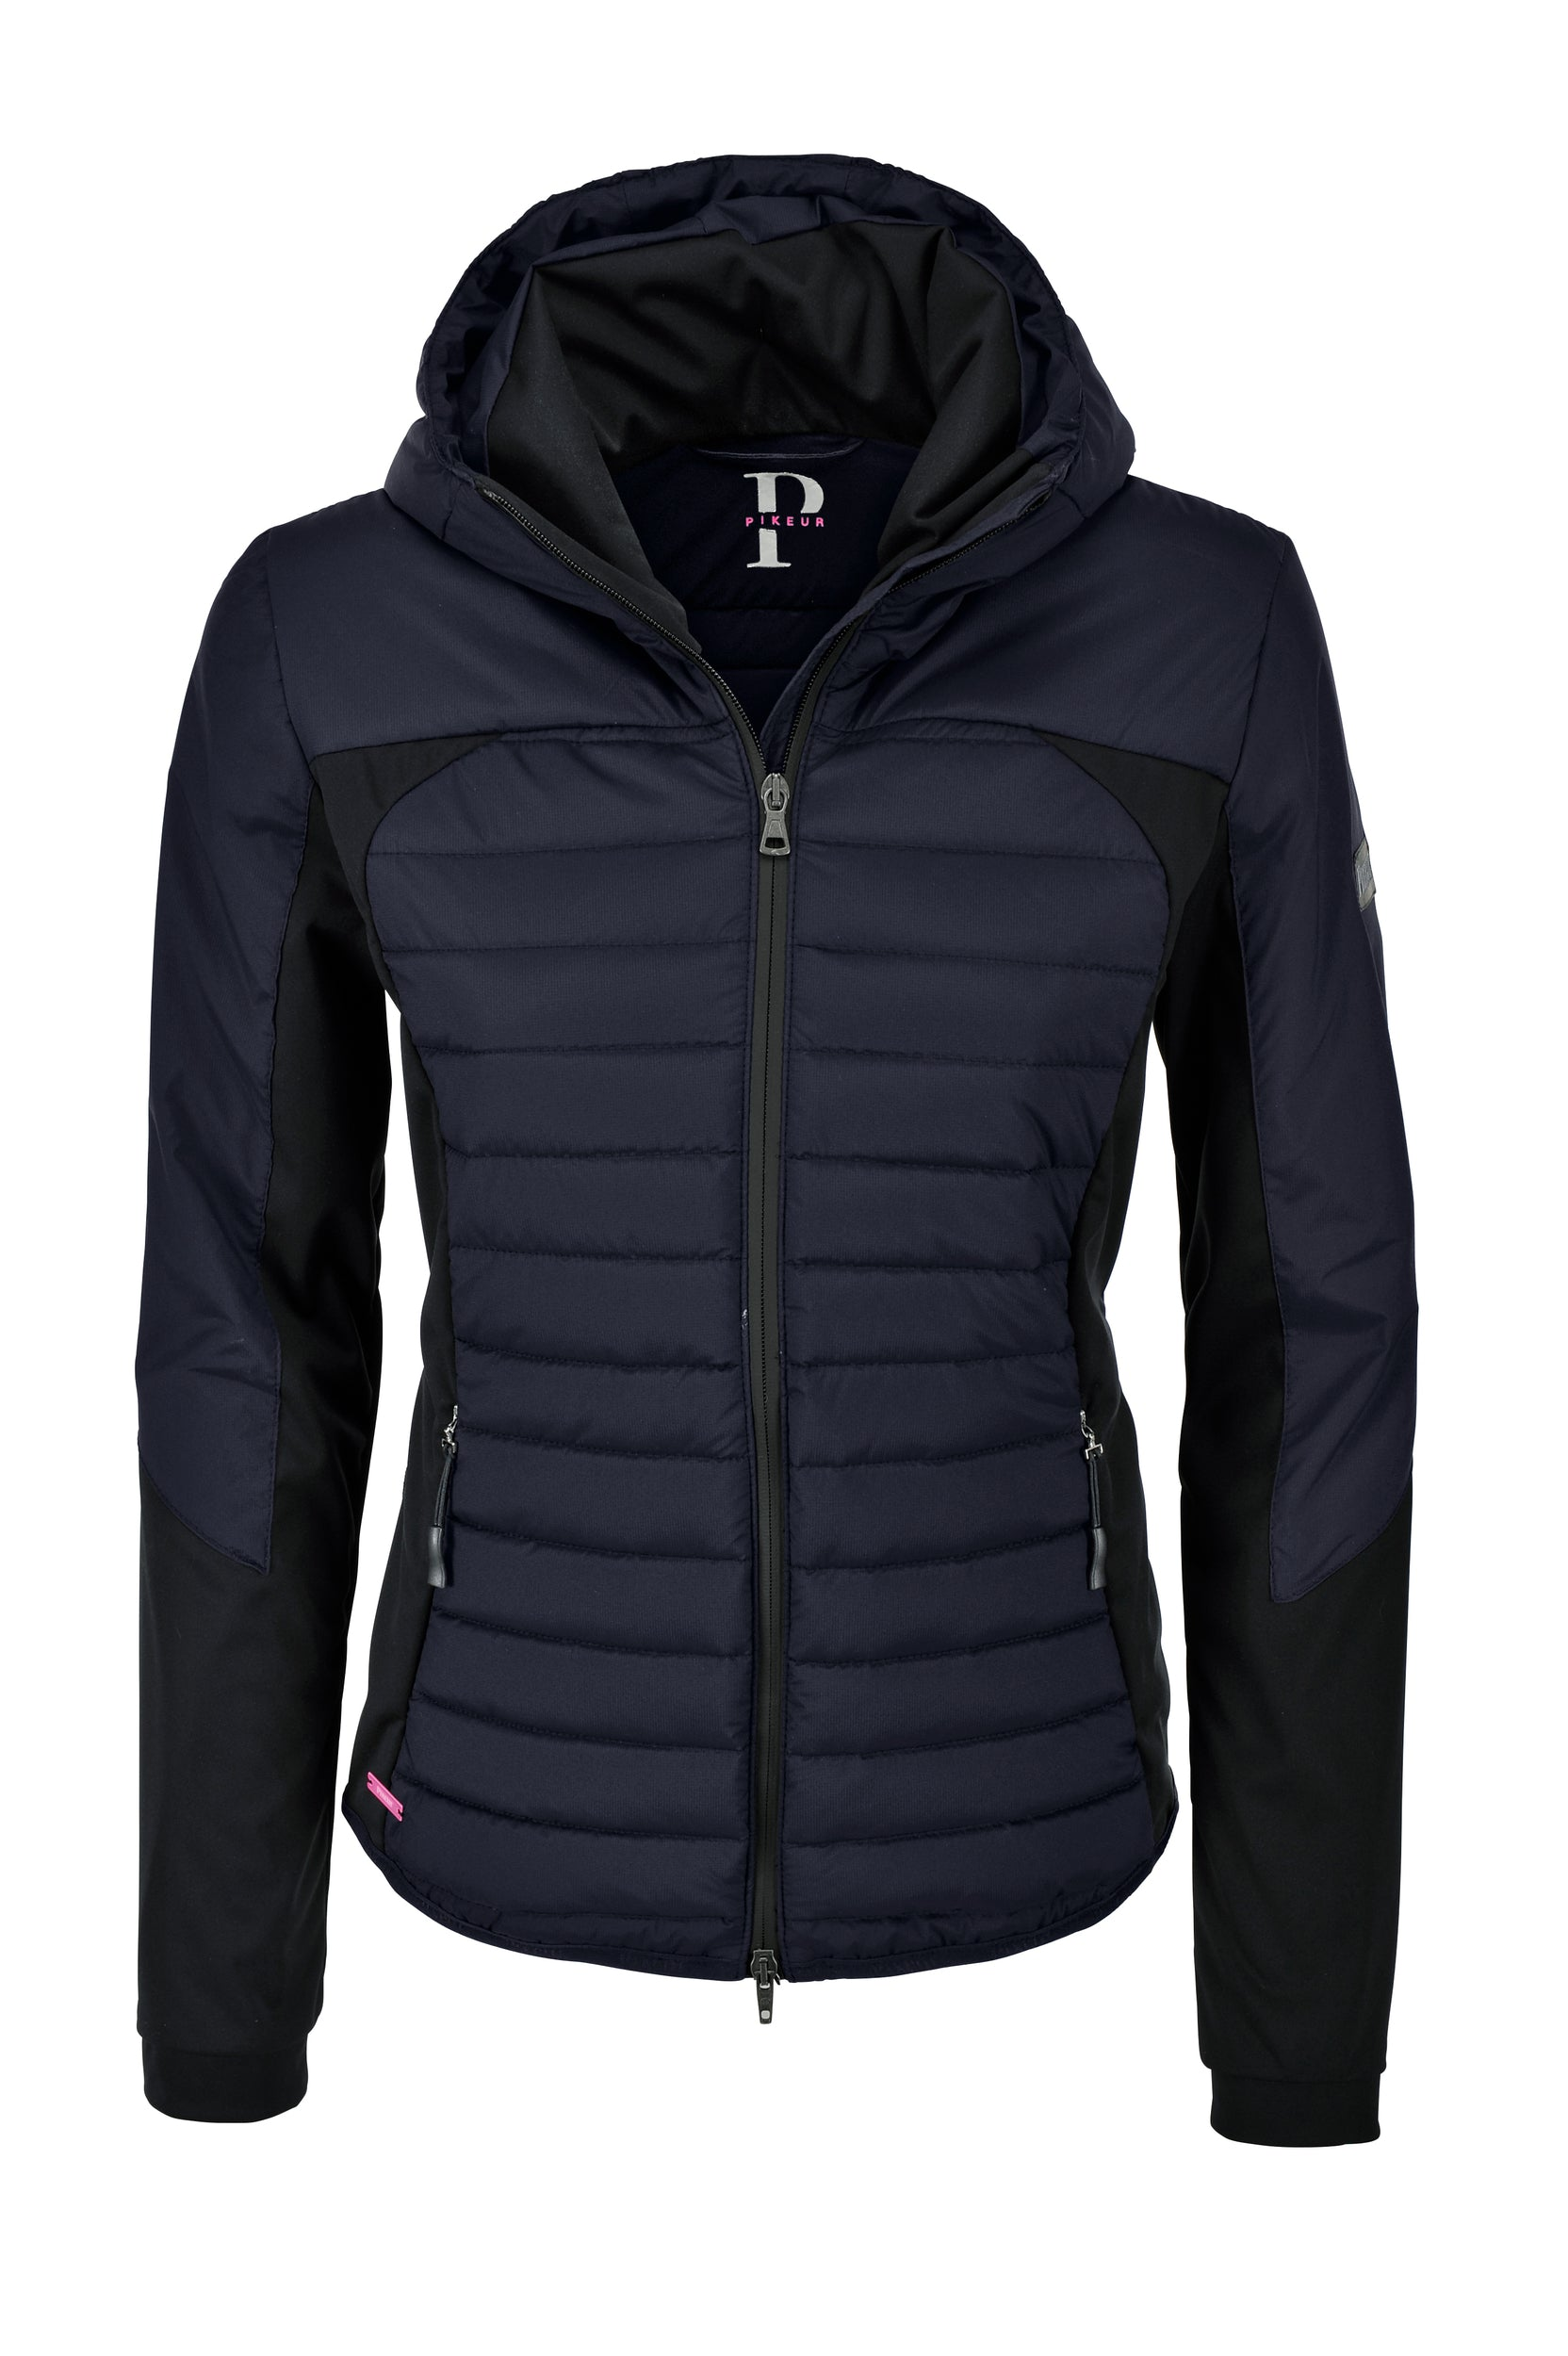 Pikeur SS20 Ginny Hybrid Jacket with attached Hood- Night Sky - Divine Equestrian